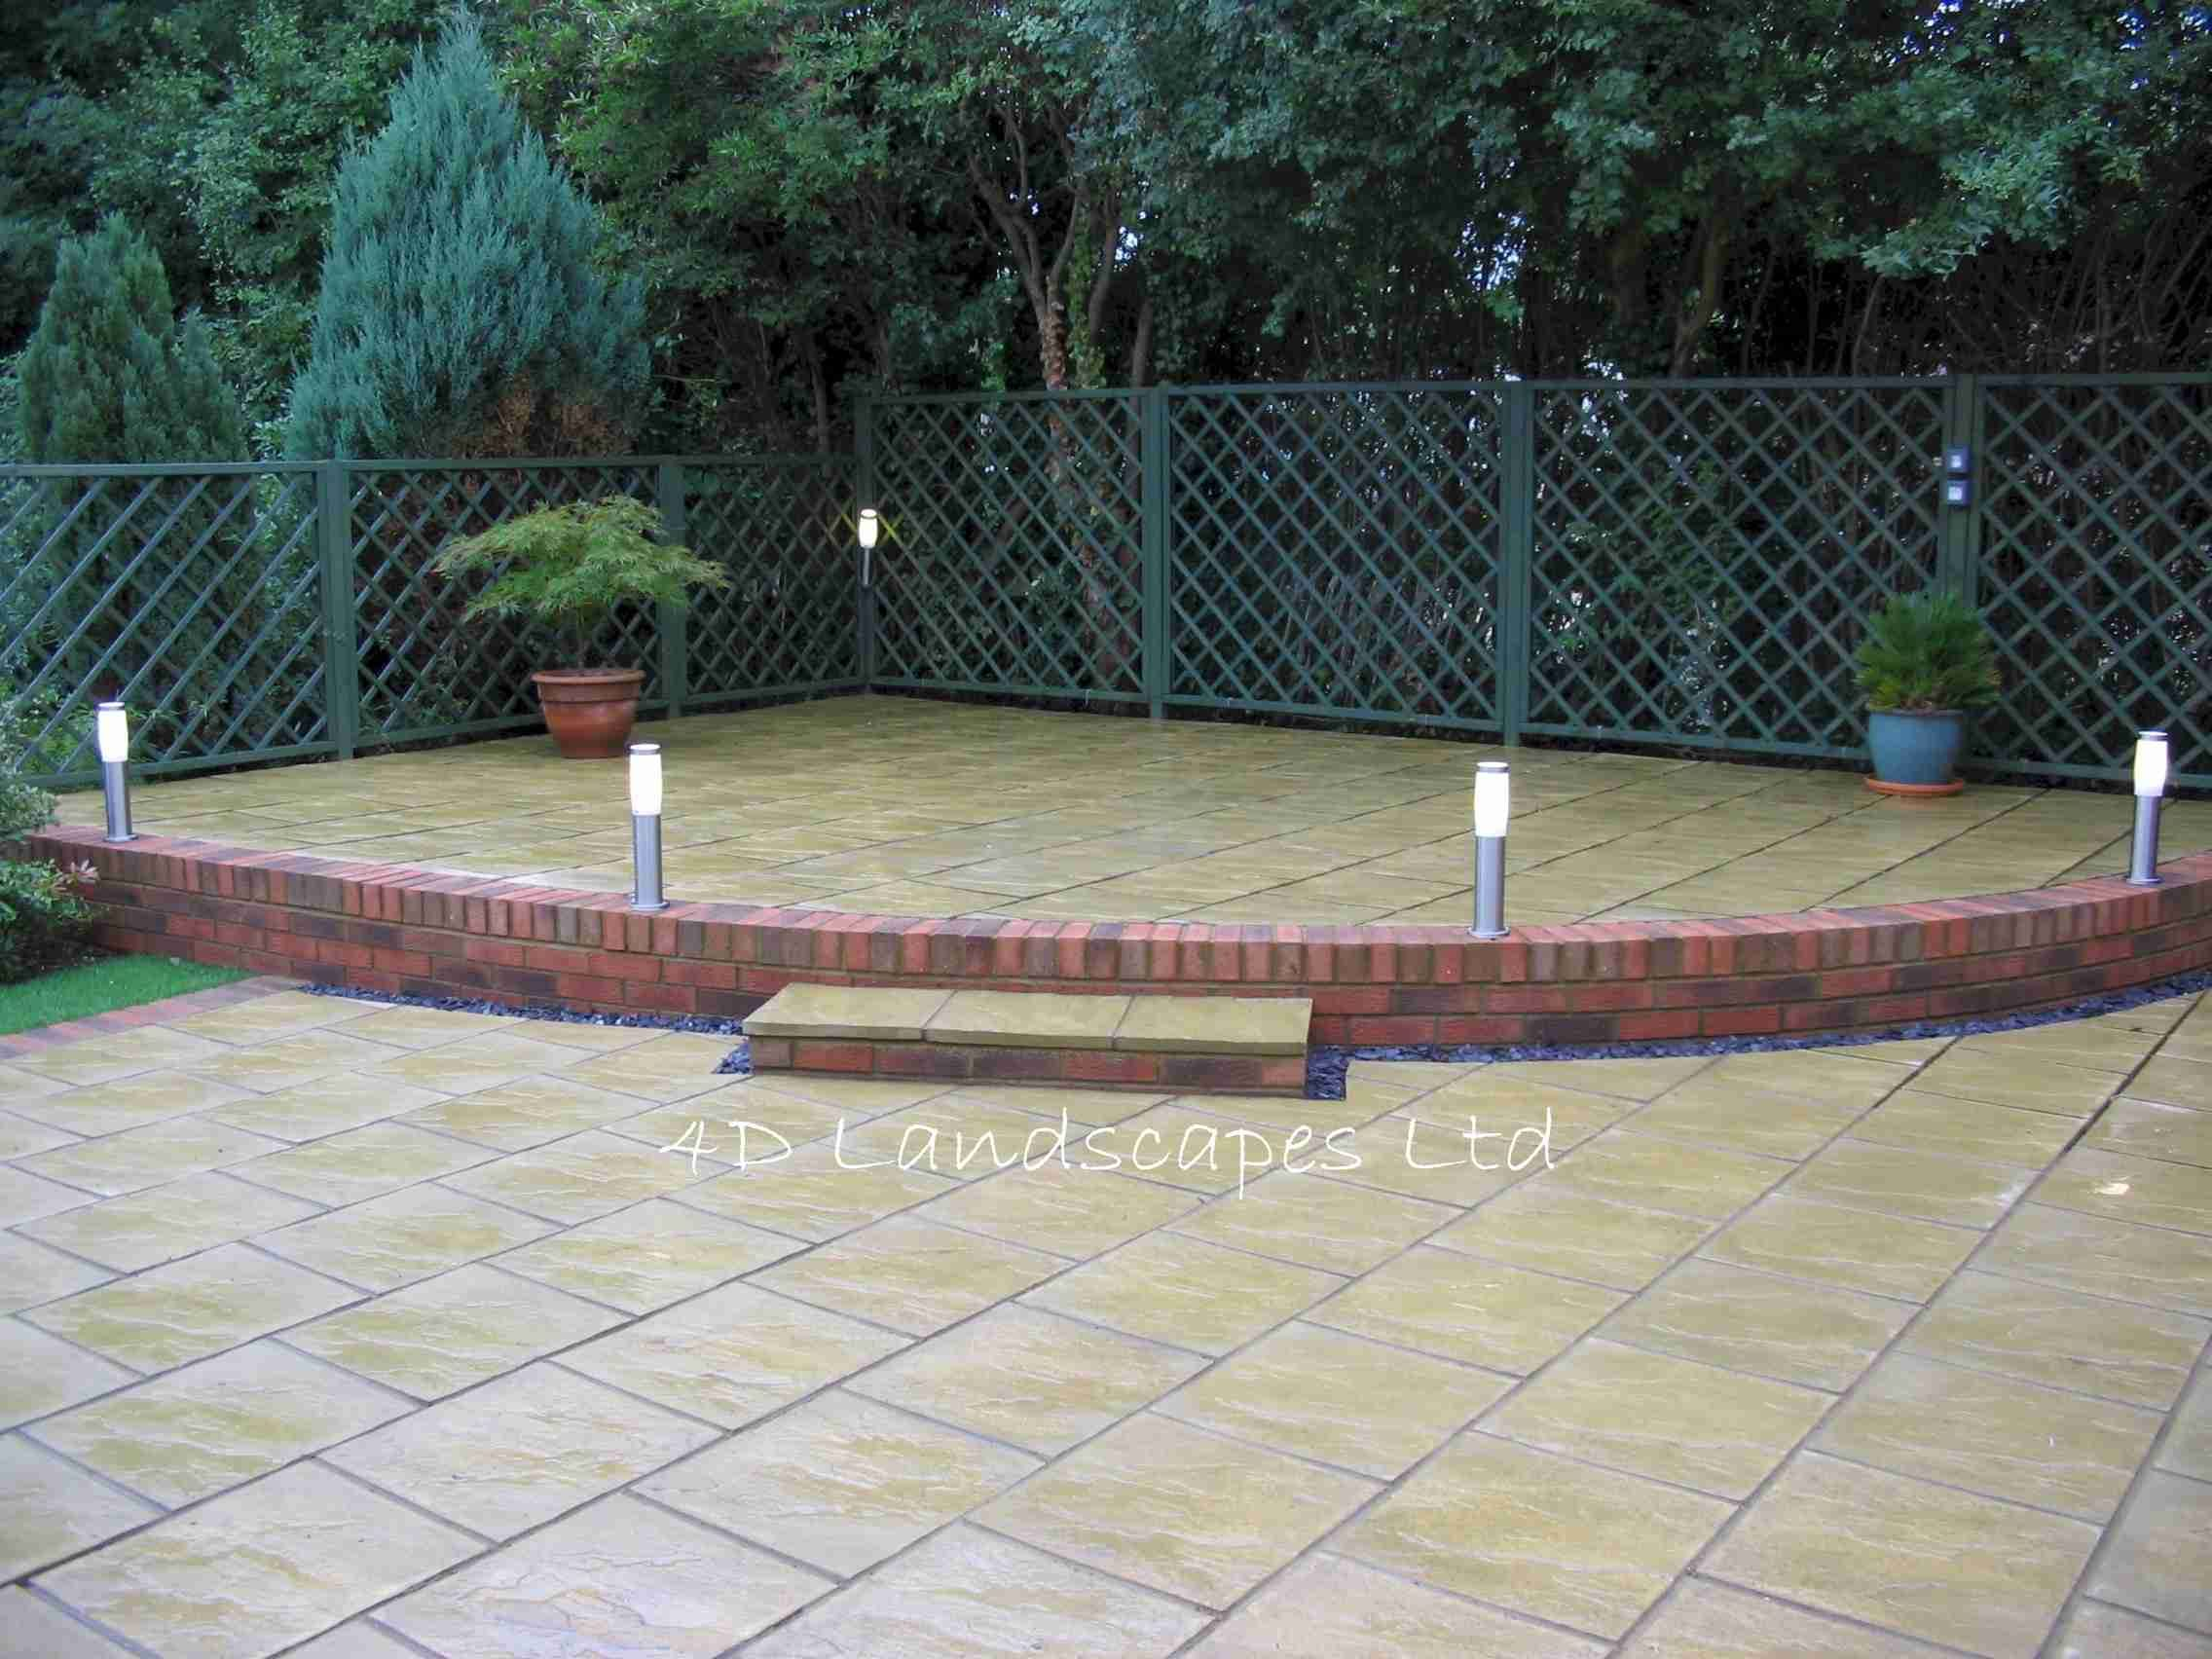 patio ideas sample garden designs landscaping and construction ideas herts uk - Patio Garden Ideas